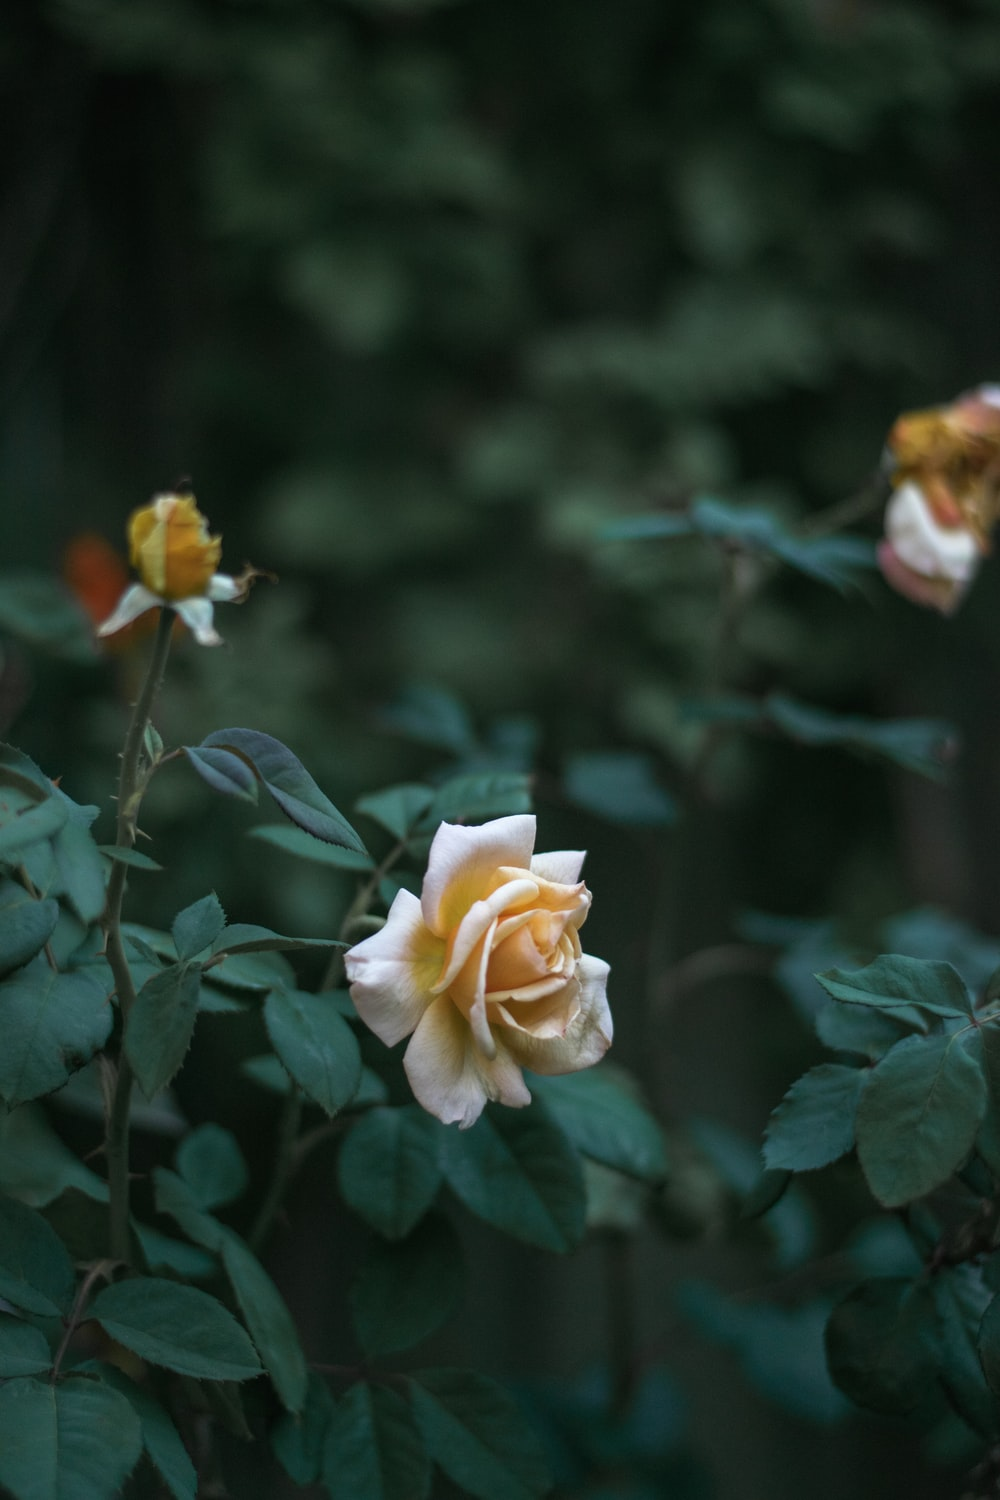 close up photography of brown rose flower